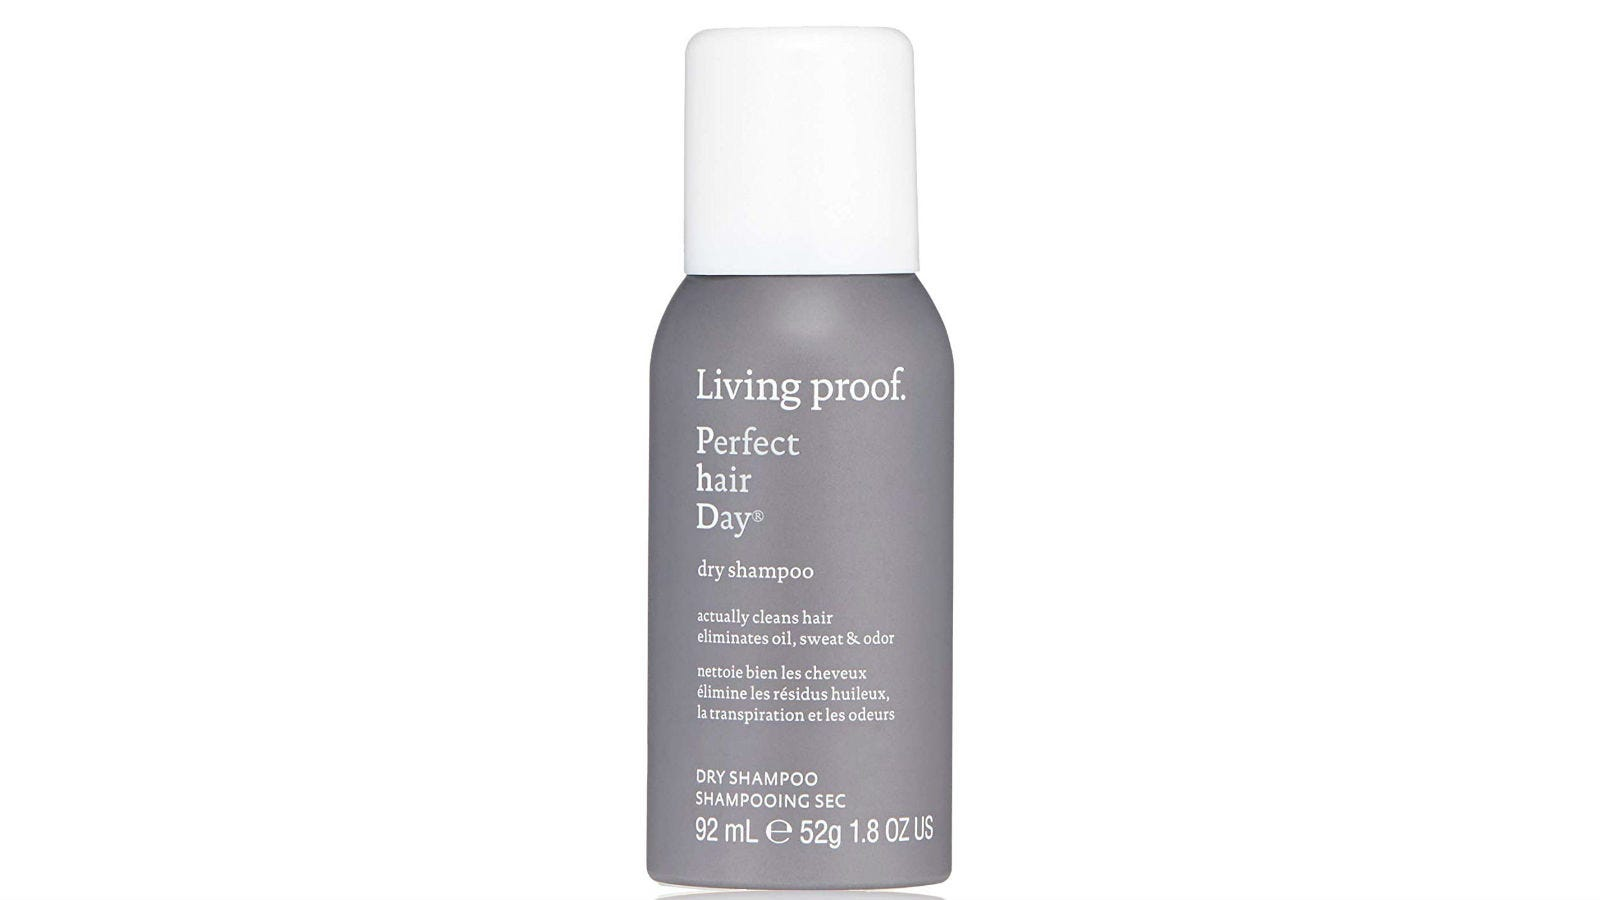 A bottle of Living Proof Perfect Hair Day Dry Shampoo